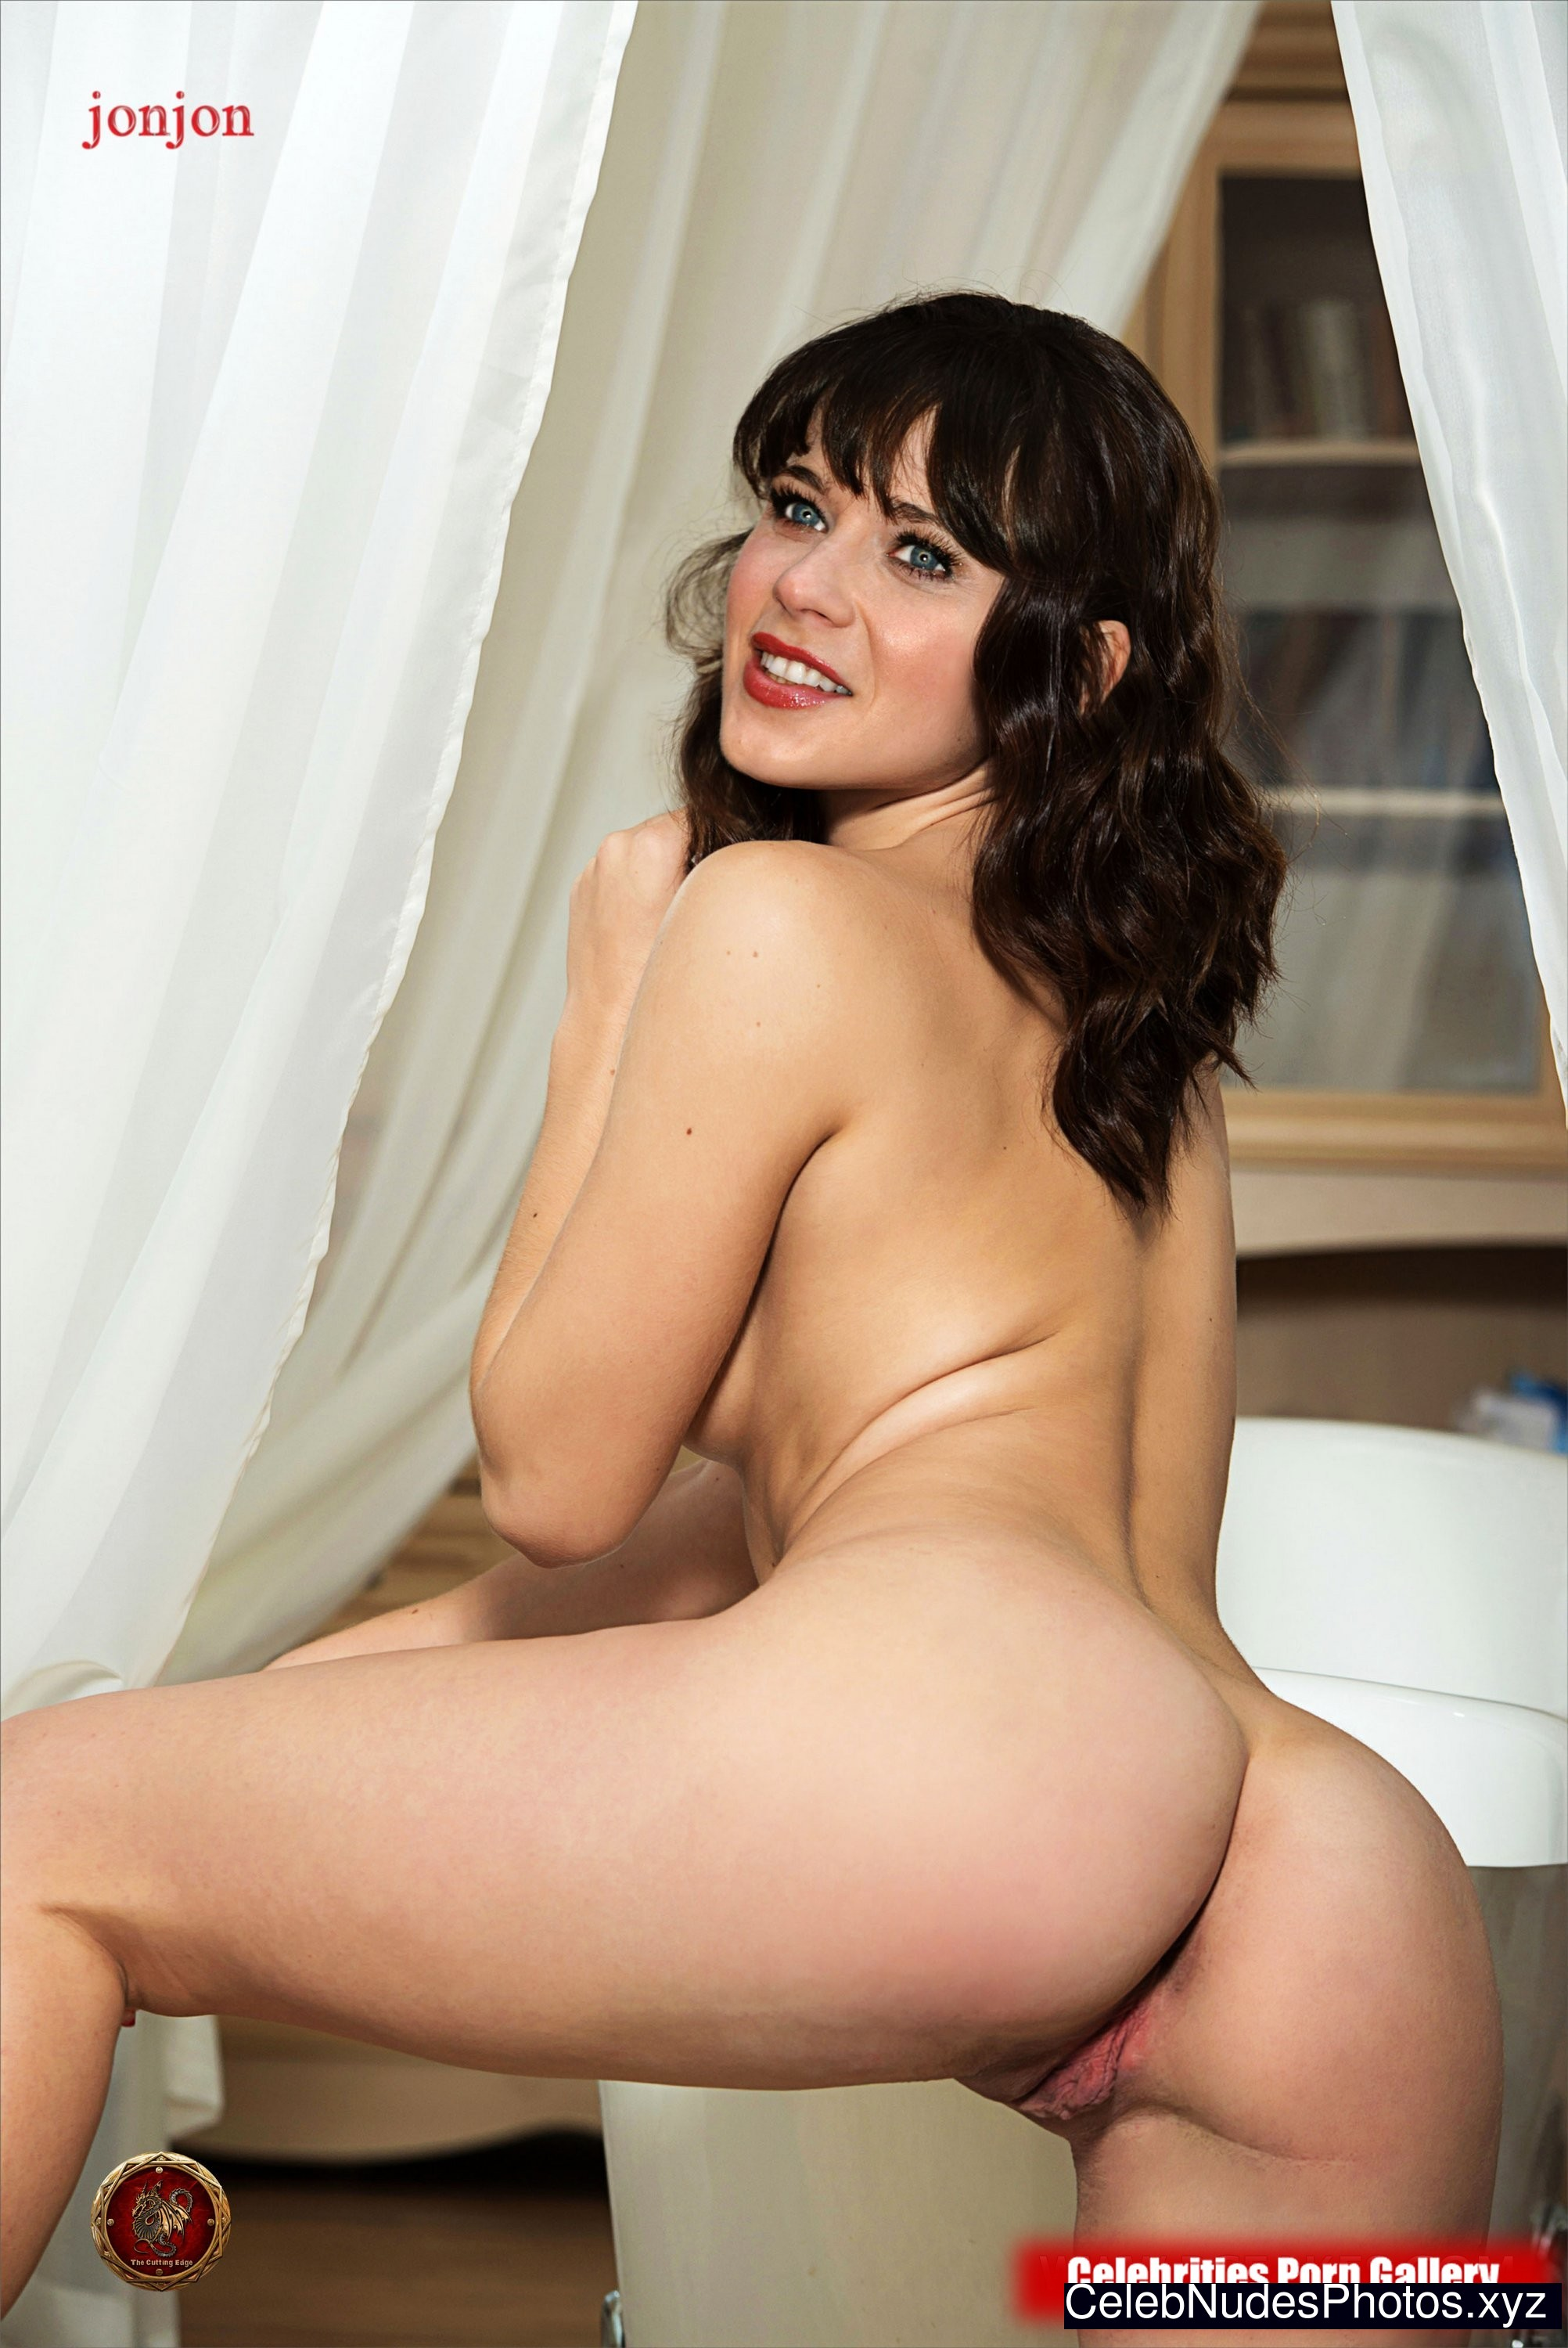 Zooey Deschanel free nude celebrities